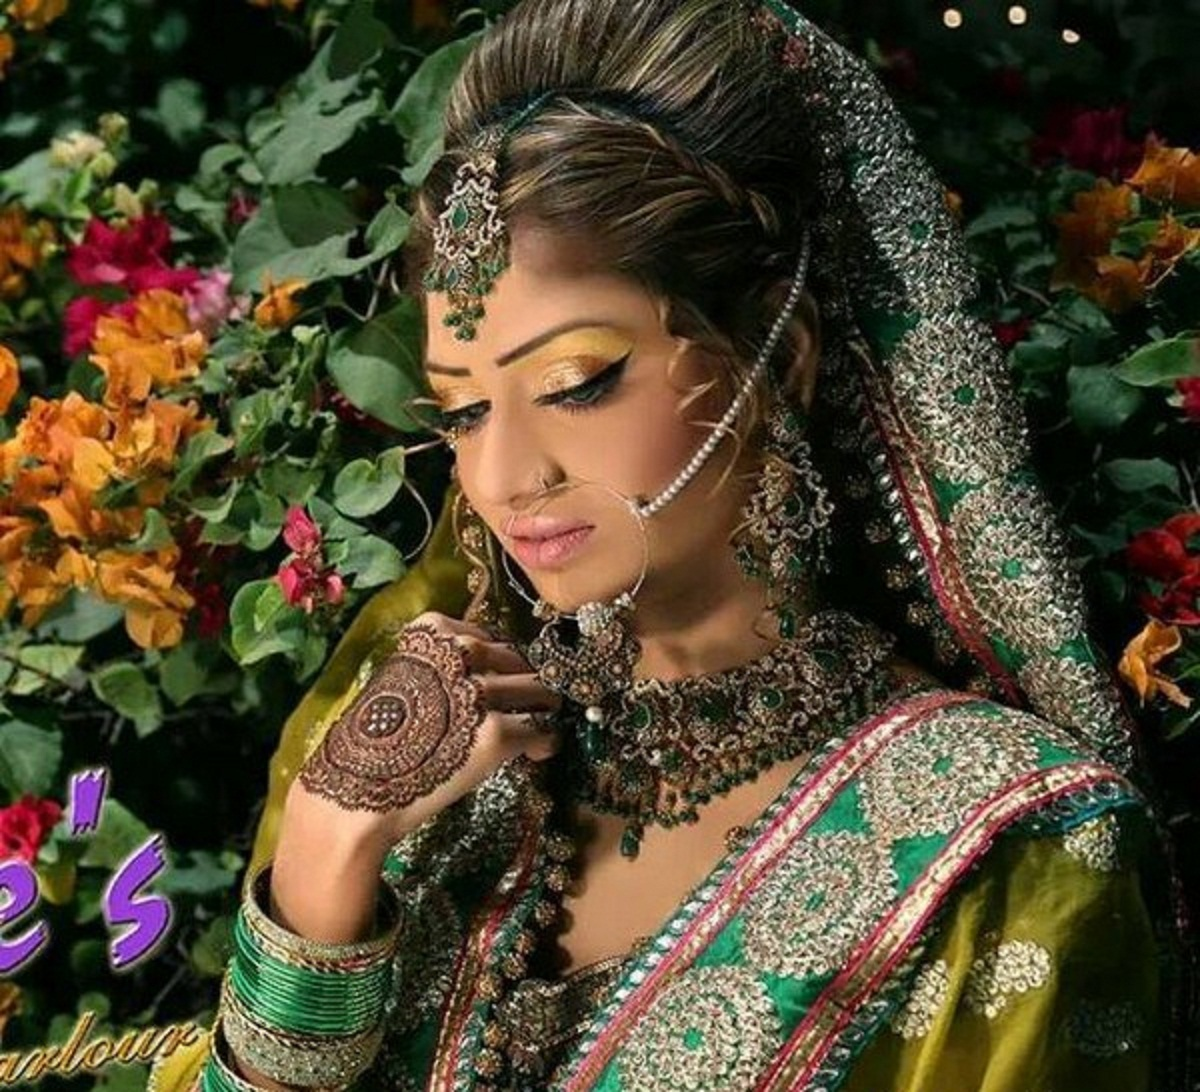 Latest Bridal Makeup Ideas For Bridal 2015 Wallpapers Free Download - FREE ALL HD WALLPAPERS ...